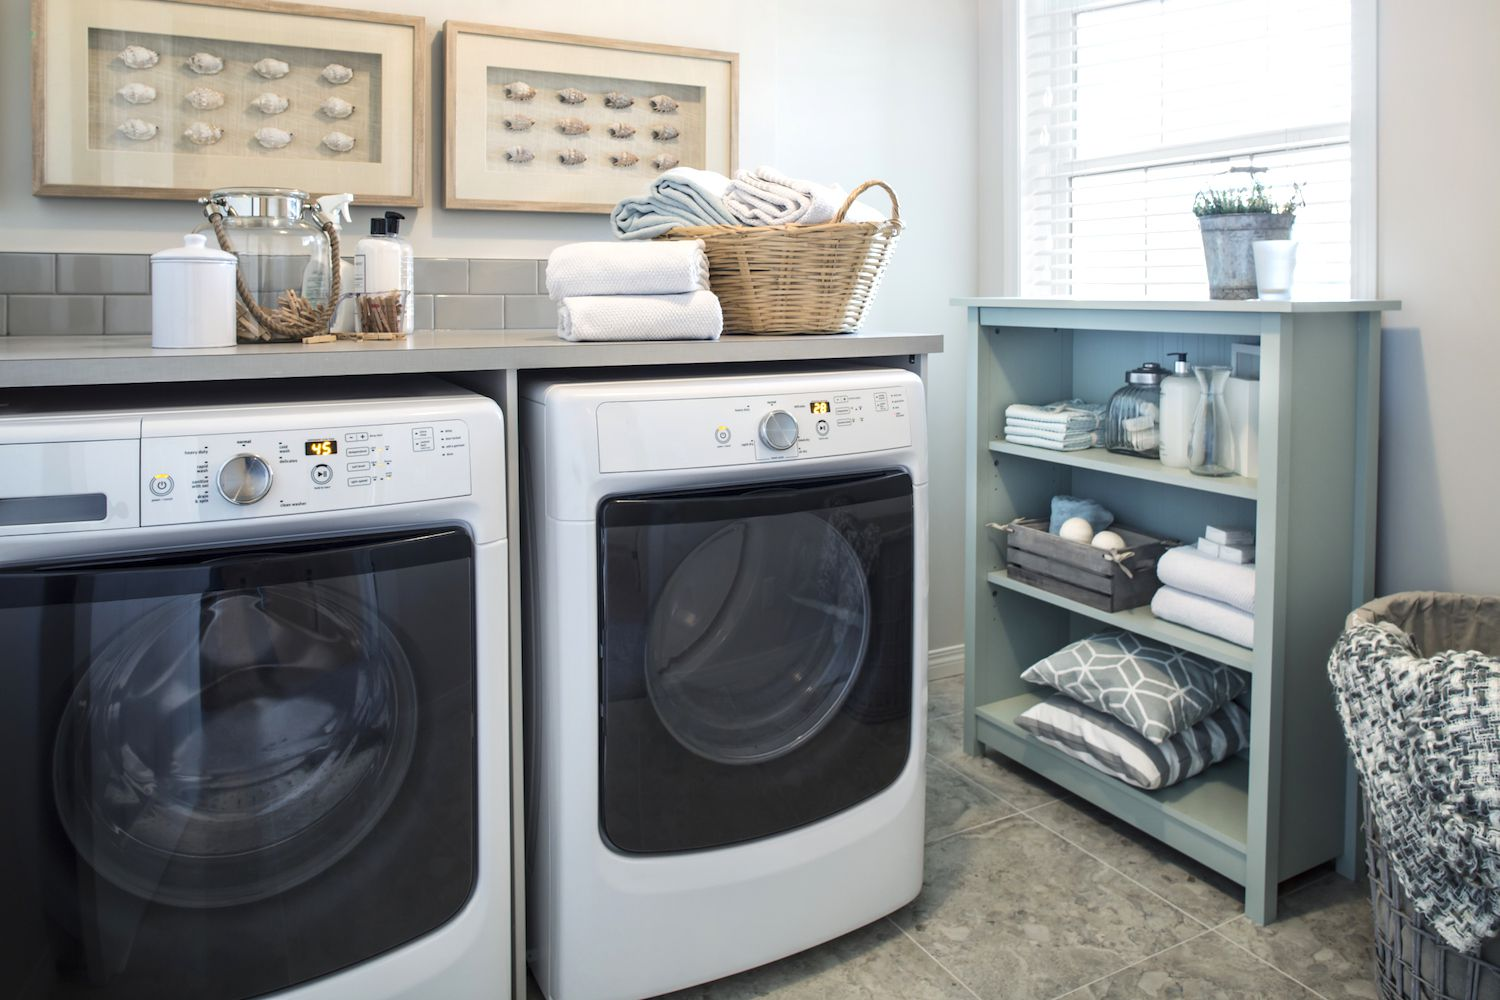 Best Washers And Dryers 2019 The 9 Best Washer & Dryer Sets of 2019